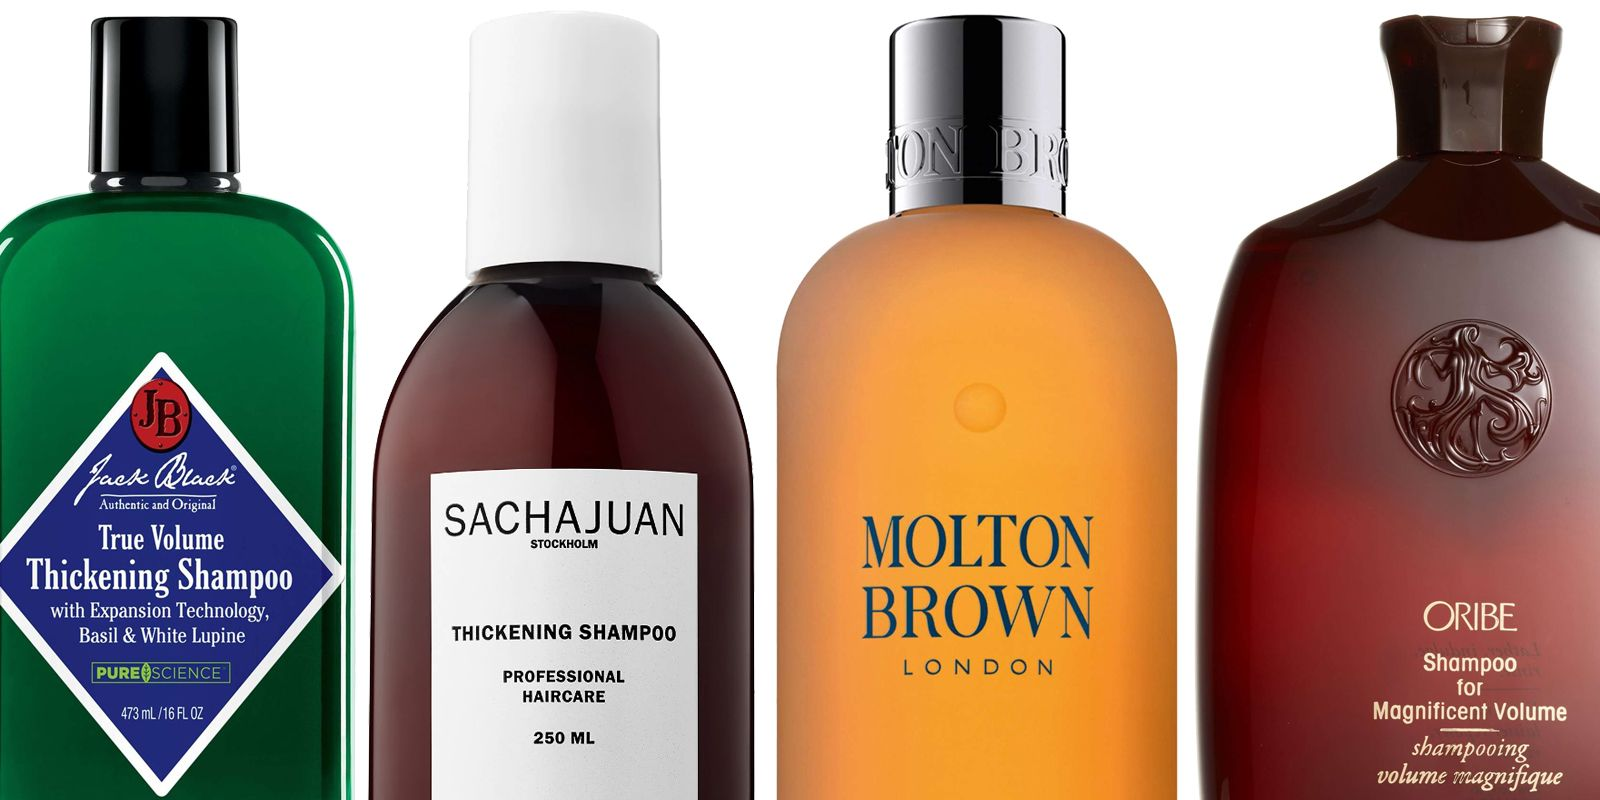 The 10 Best Shampoos for Thinning Hair